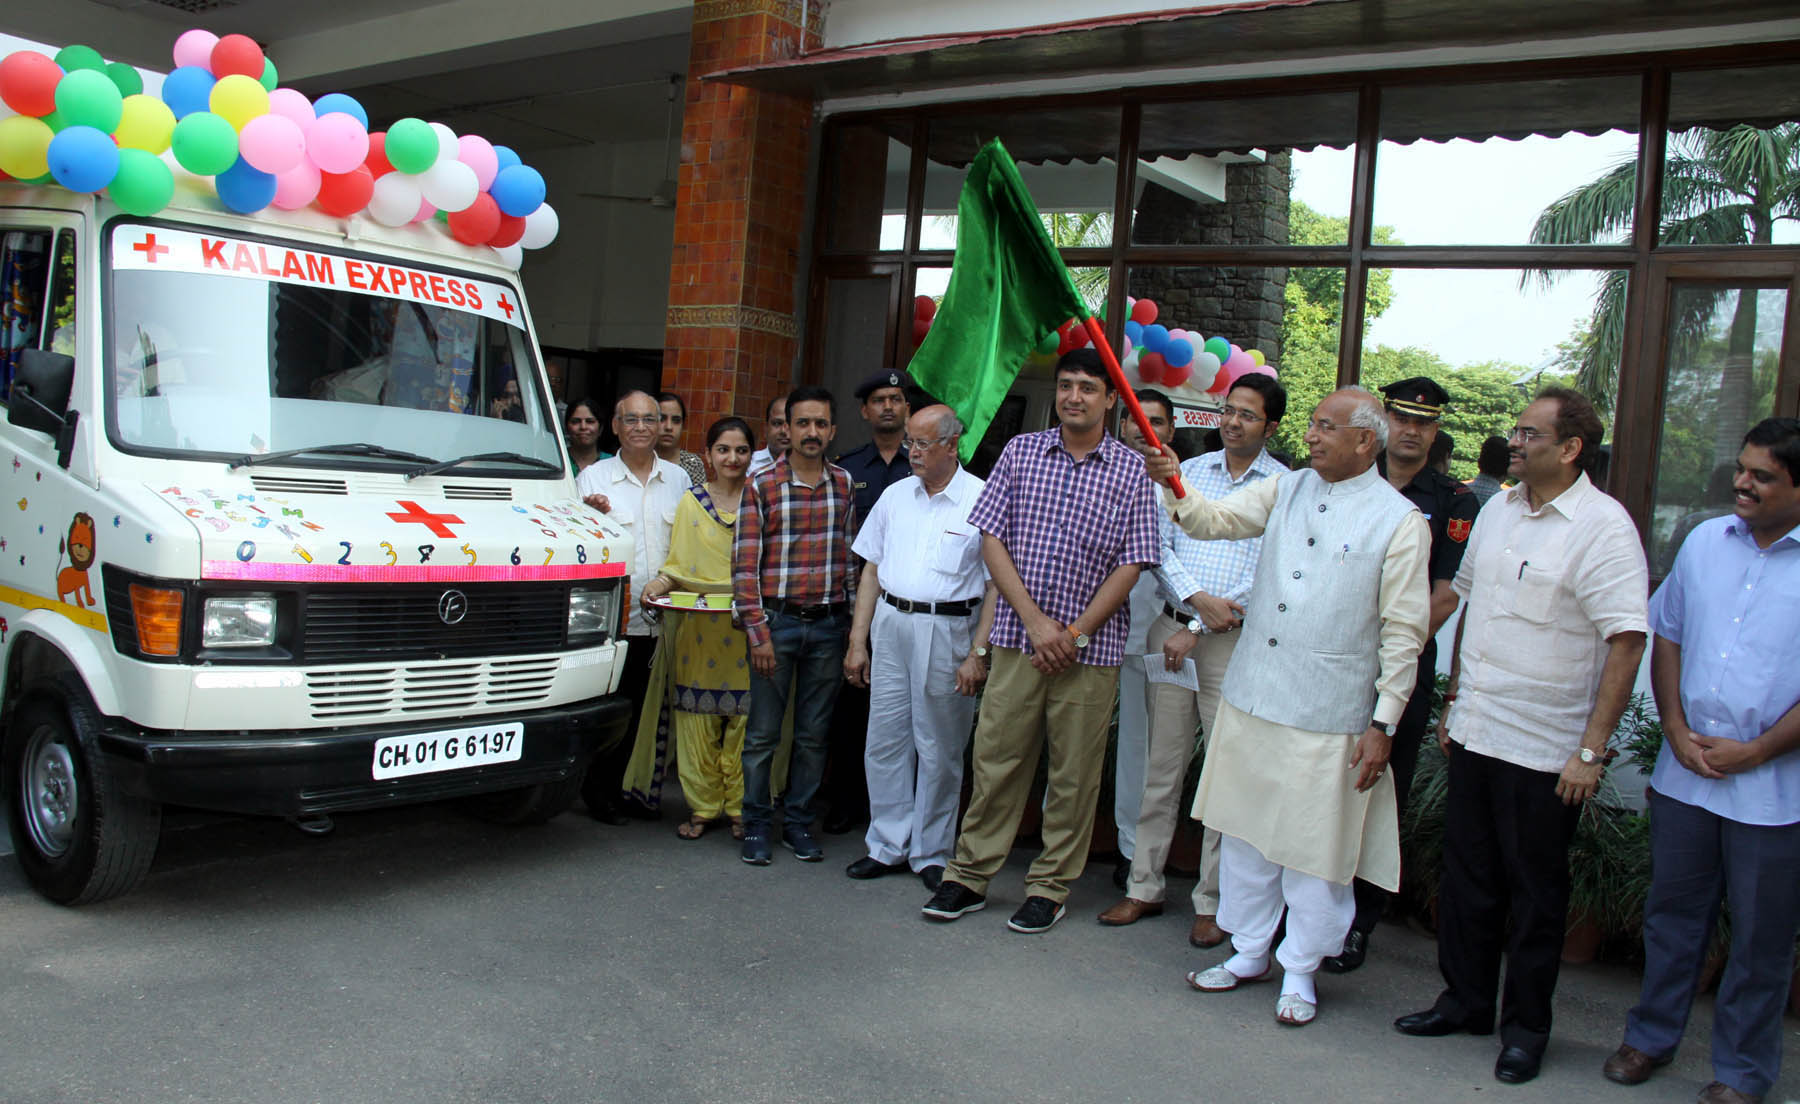 The Governor of Haryana, Punjab and Administrator, UT, Chandigarh, Prof. Kaptan Singh Solanki alongwith Adviser to the Administrator, UT, Chandigarh, Sh. Parimal Rai and other senior officers flagging off �Kalam Express� a Mobile Educational-cum-Rehabilitation unit for Children with Special needs at Haryana Raj Bhawan, Chandigarh on Thursday, June 23, 2016.